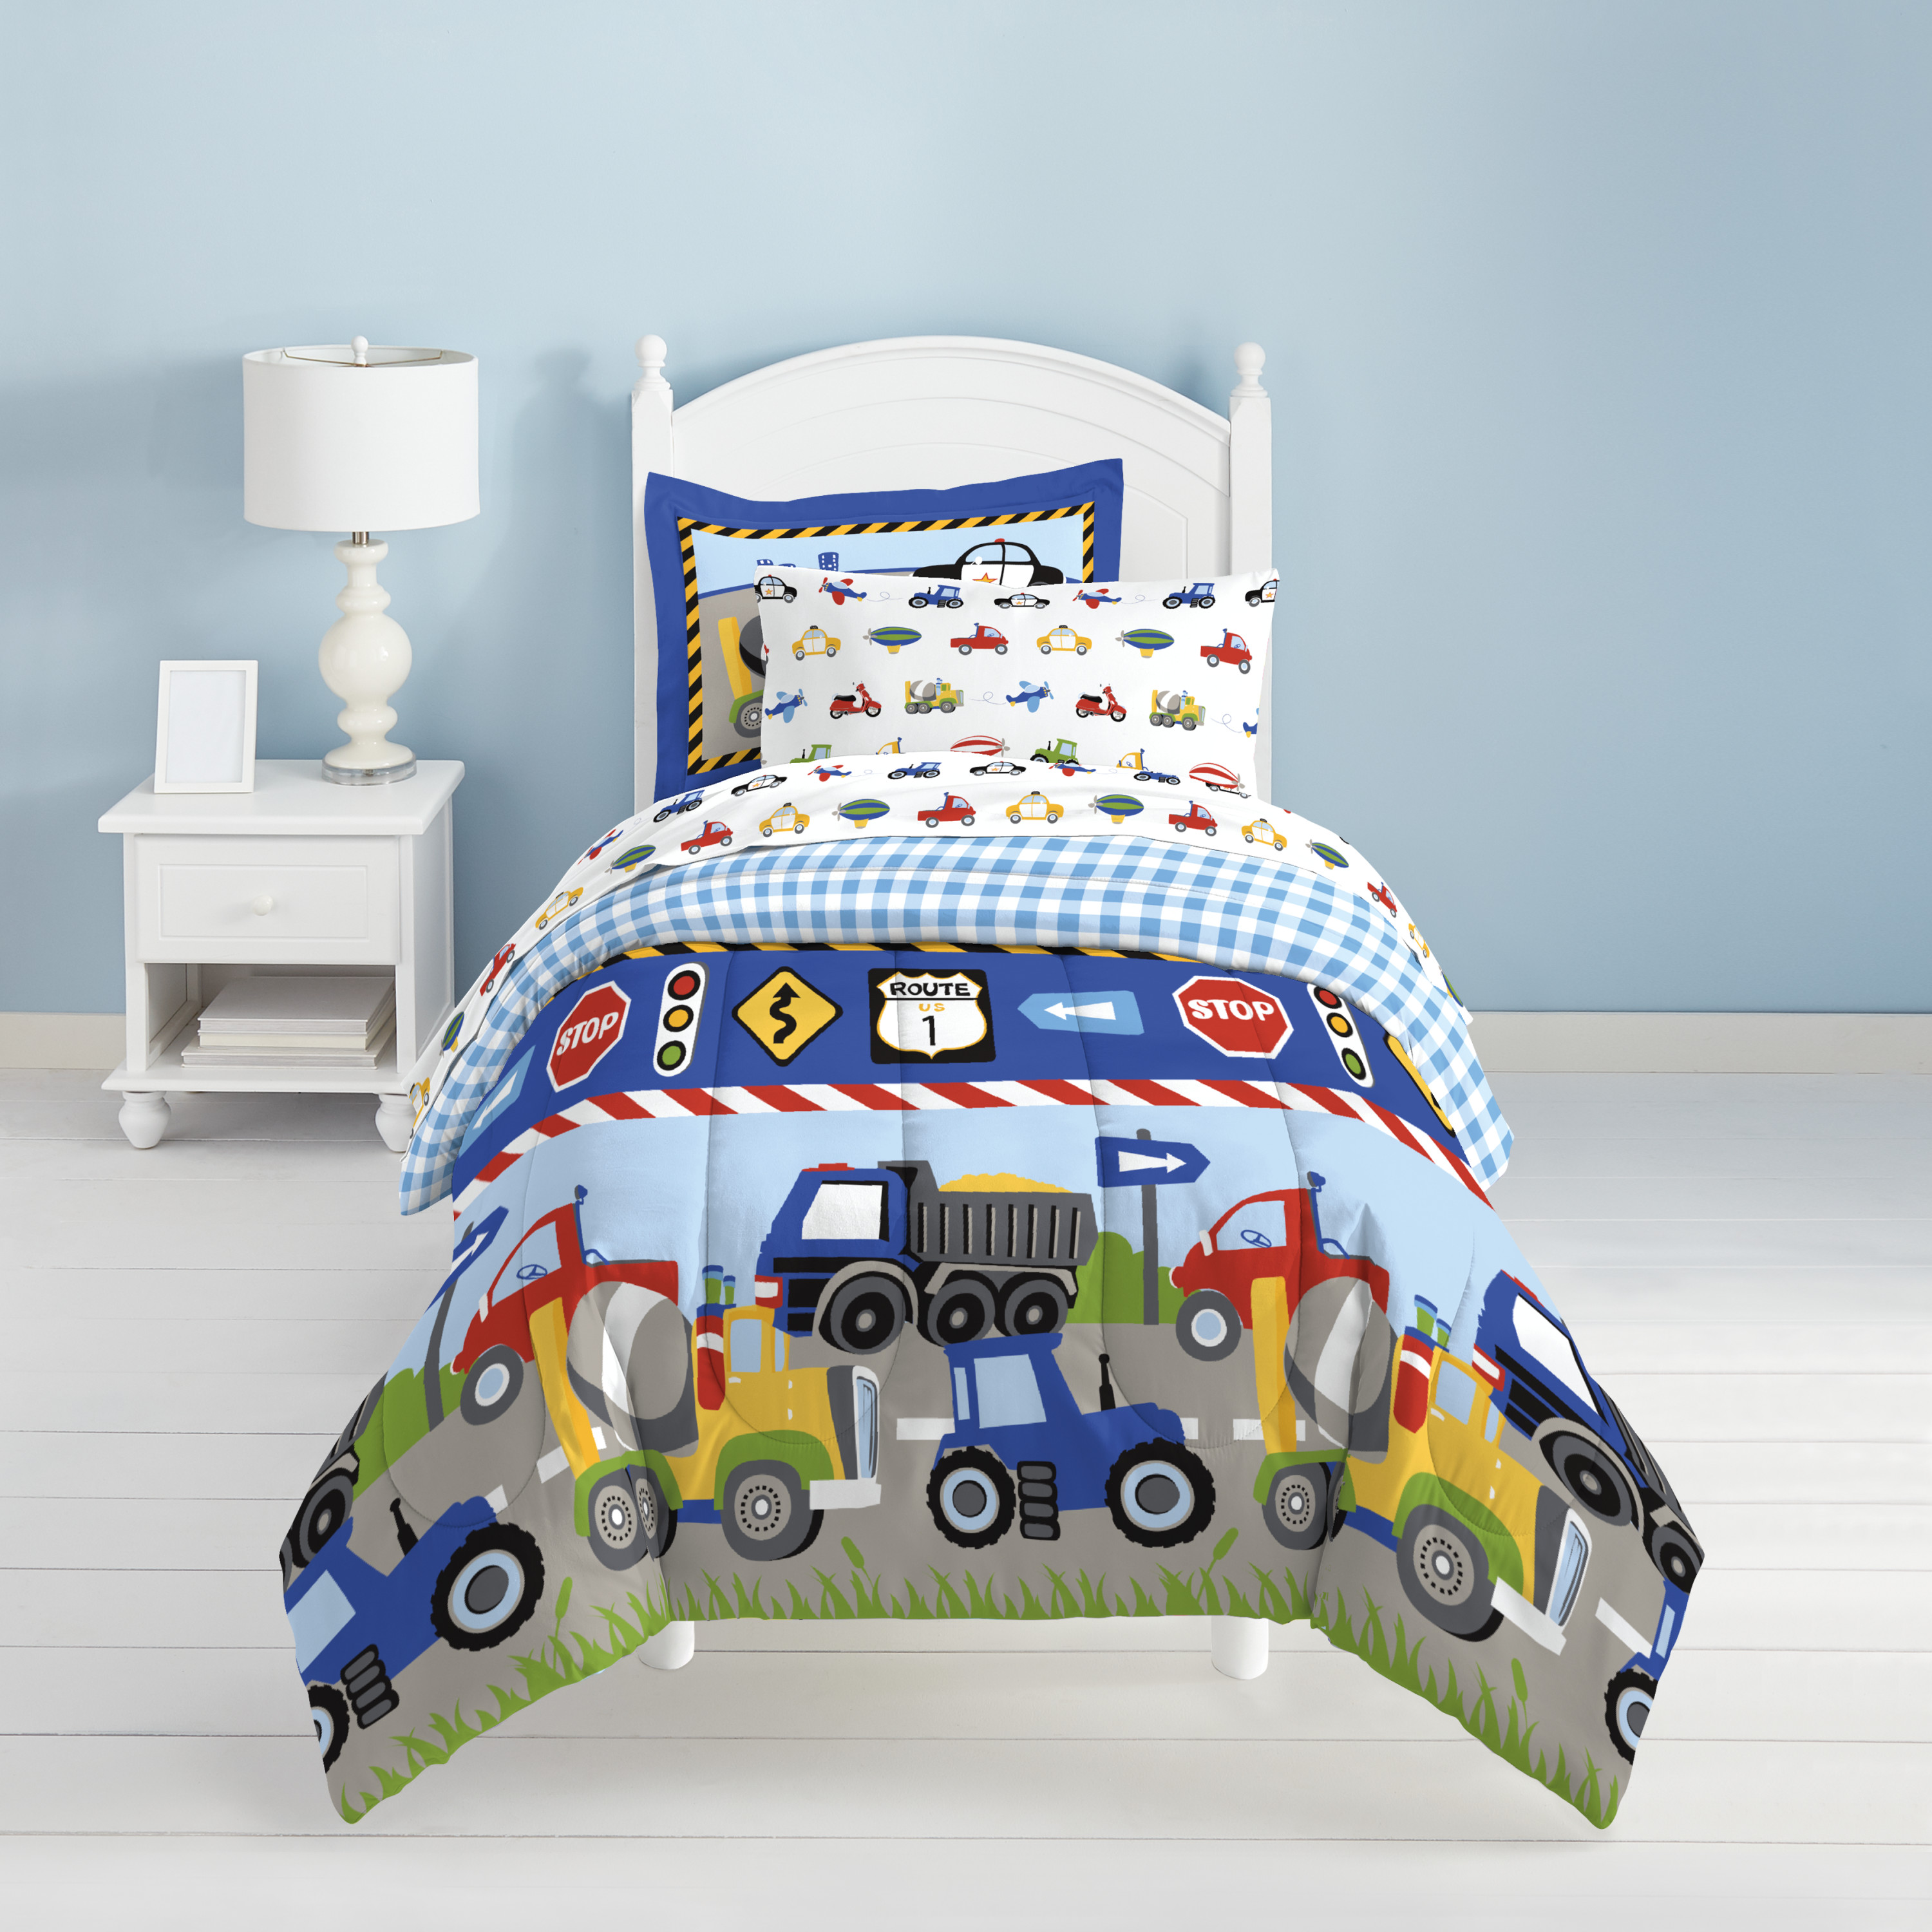 Agriculture Tractor Duvet Cover Set Bedding Set and Pillowcase Boys Teens Gift